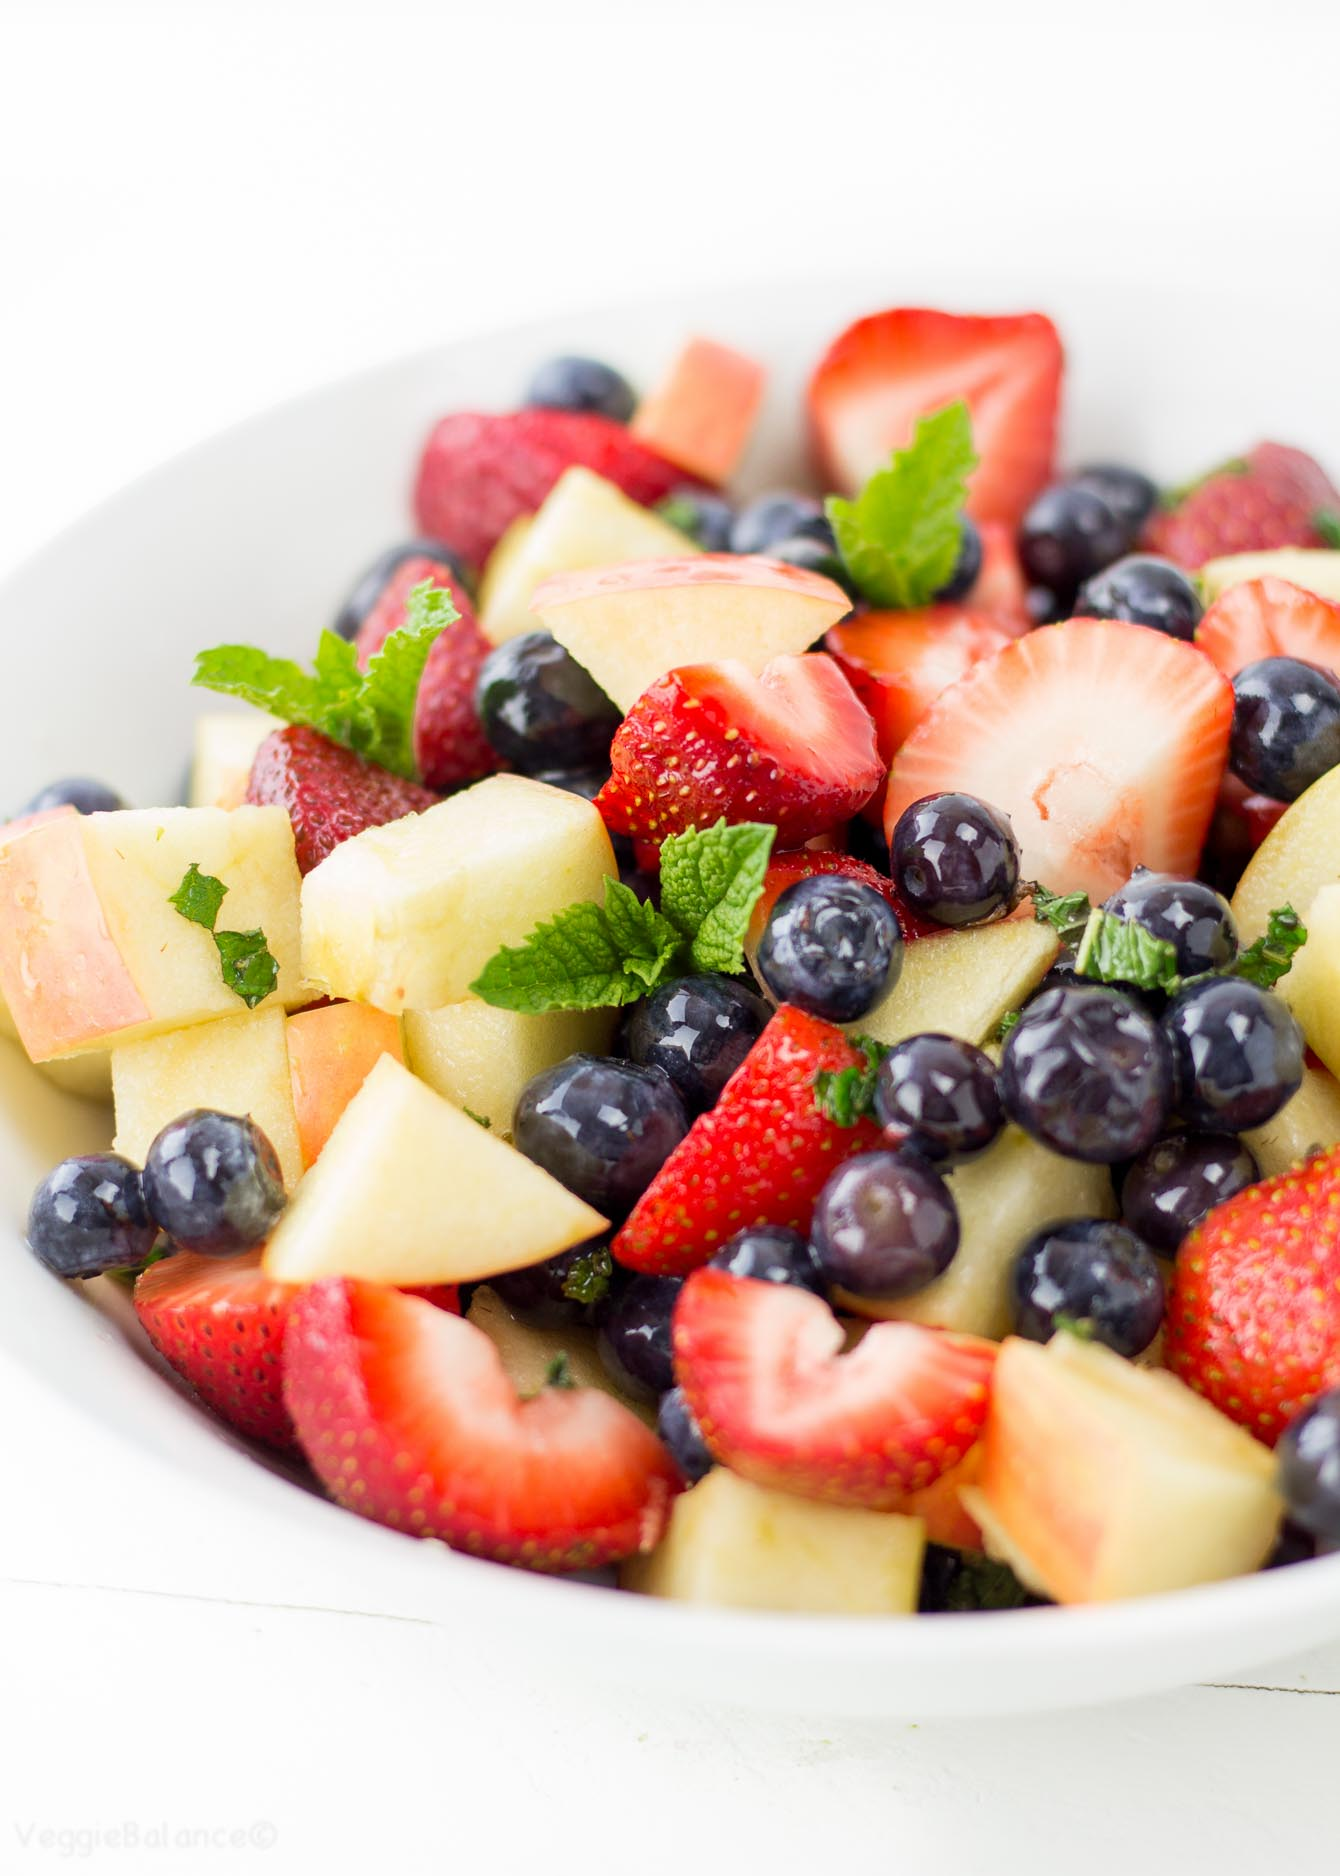 Lemon Mint Fruit Salad (aka The Red, White & Blue Fruit Salad) Toss strawberries, blueberries and apples together then drizzle with a homemade fresh lemon mint dressing. So simple but so delicious. (Gluten Free, Dairy Free, Vegan)